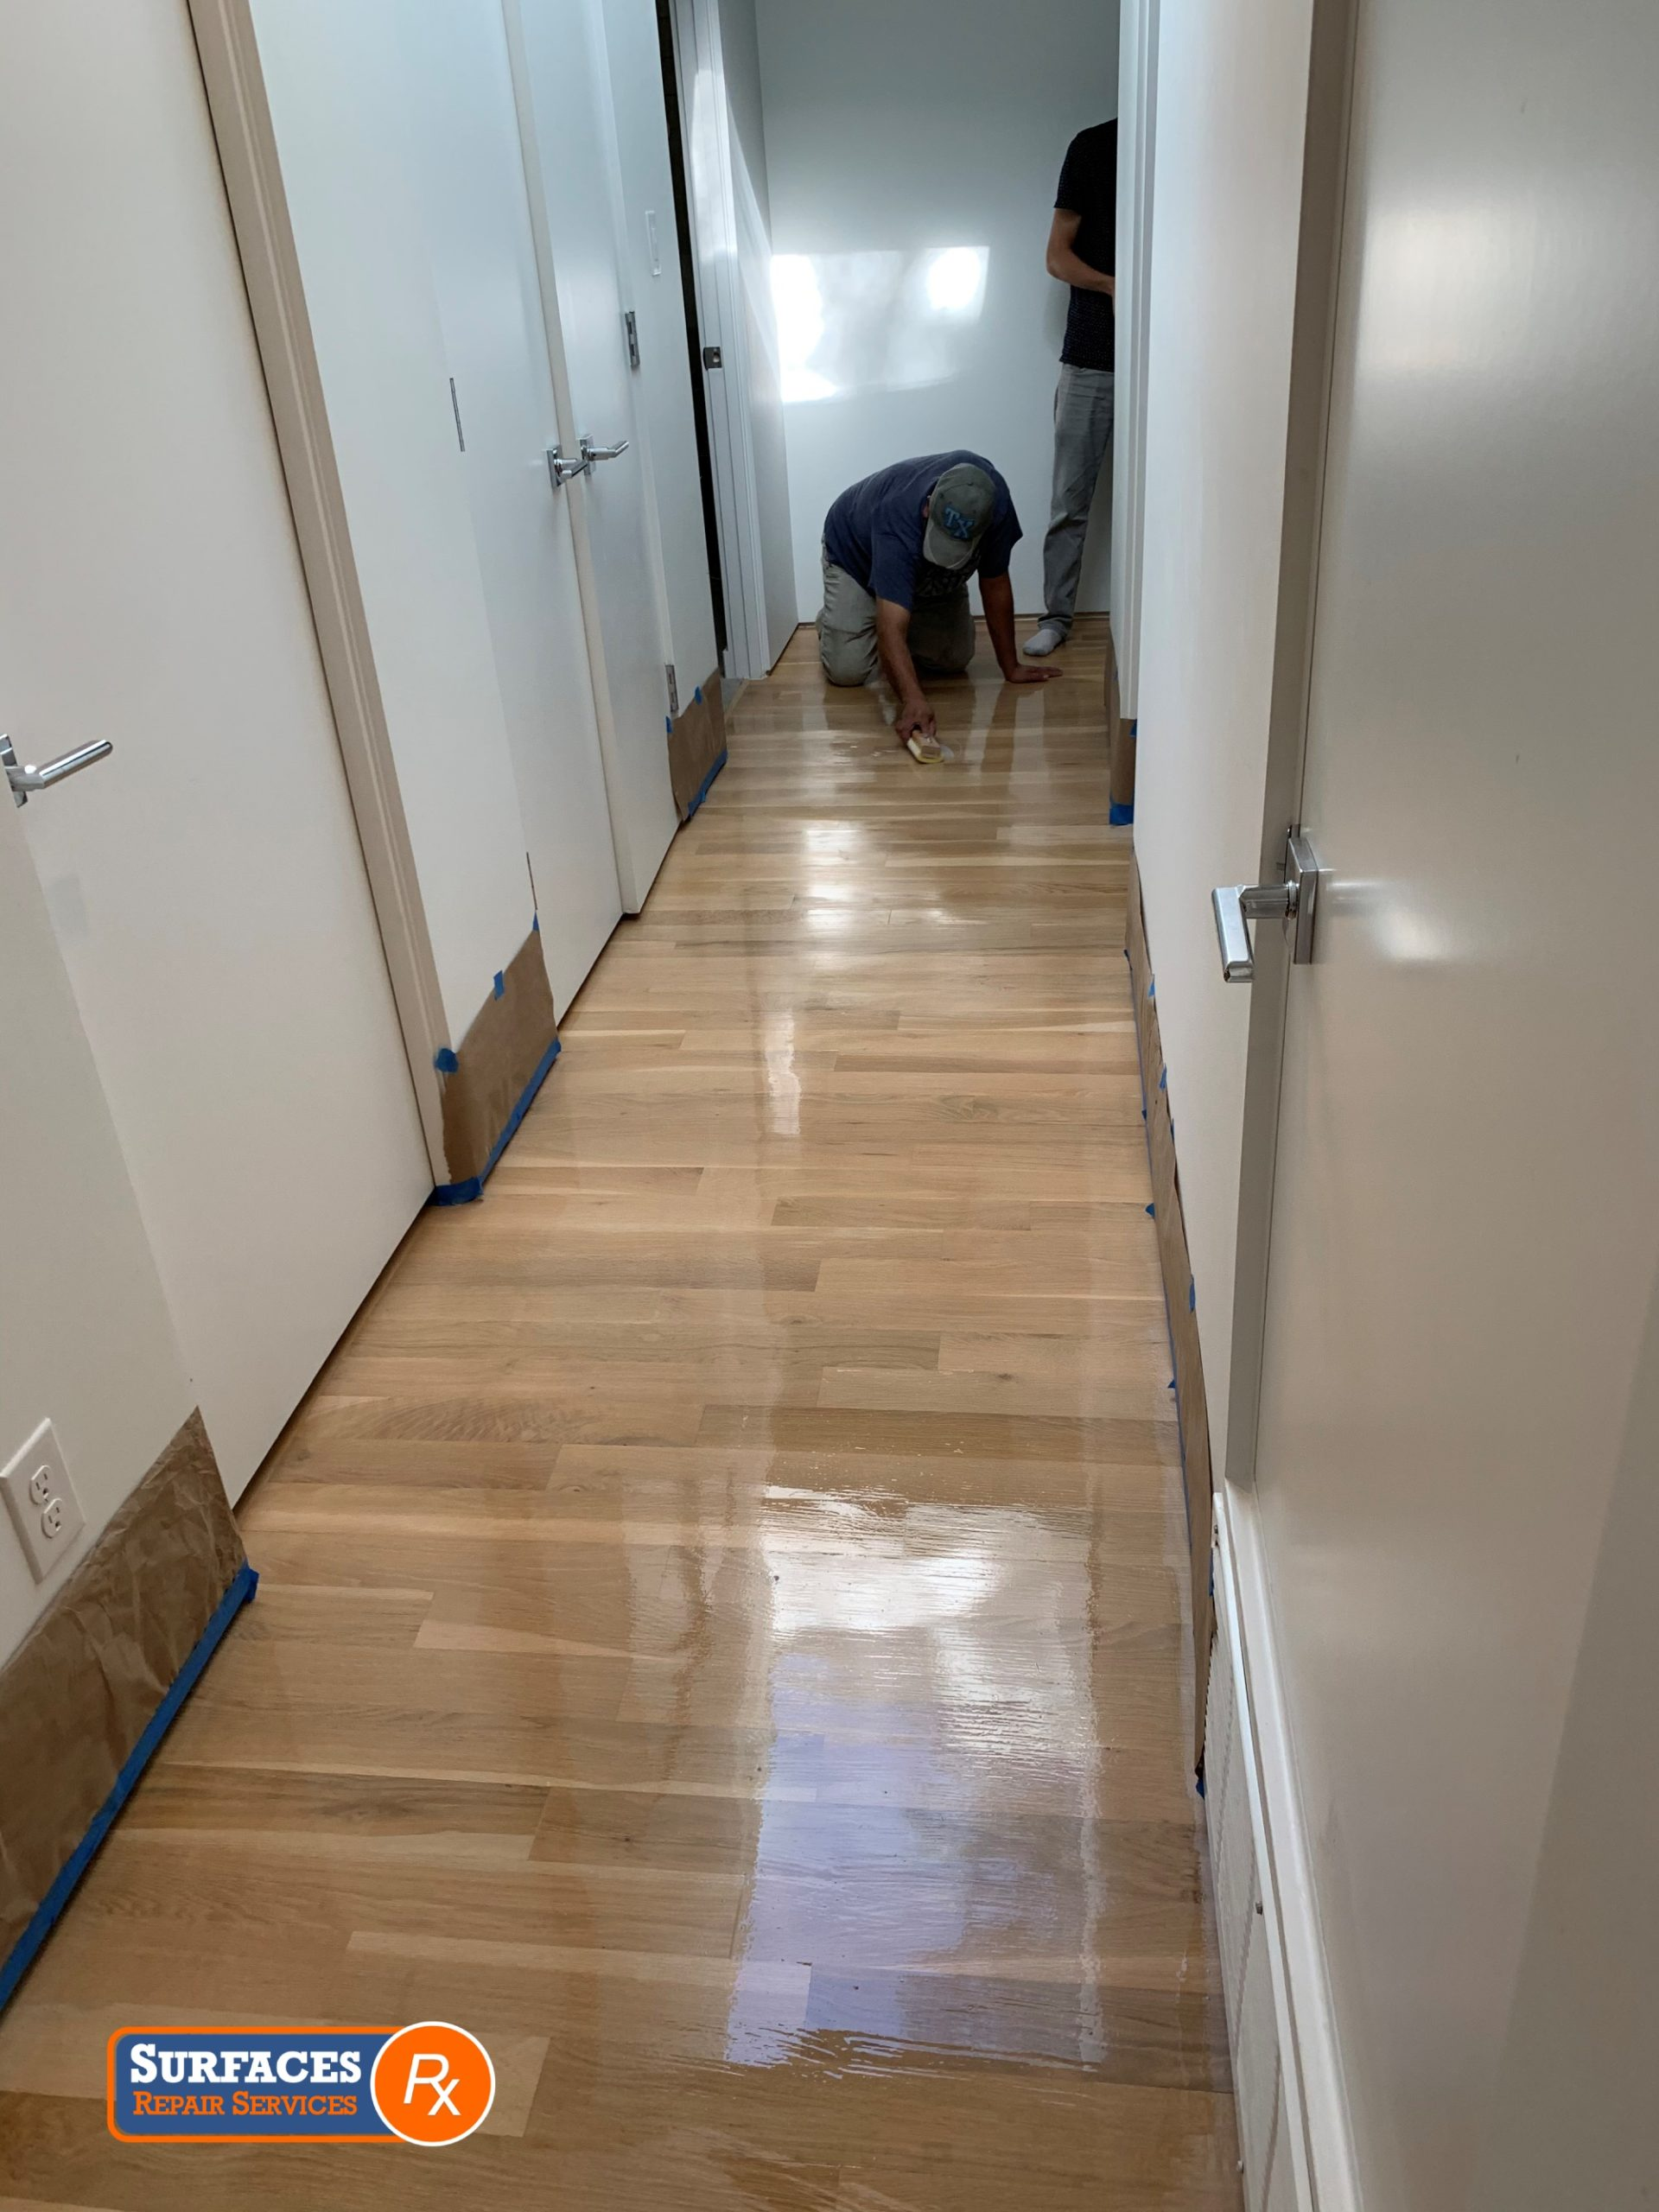 Applying Waterborne Top Coat Finish After Repairing Scratch Dallas Hardwood Floor